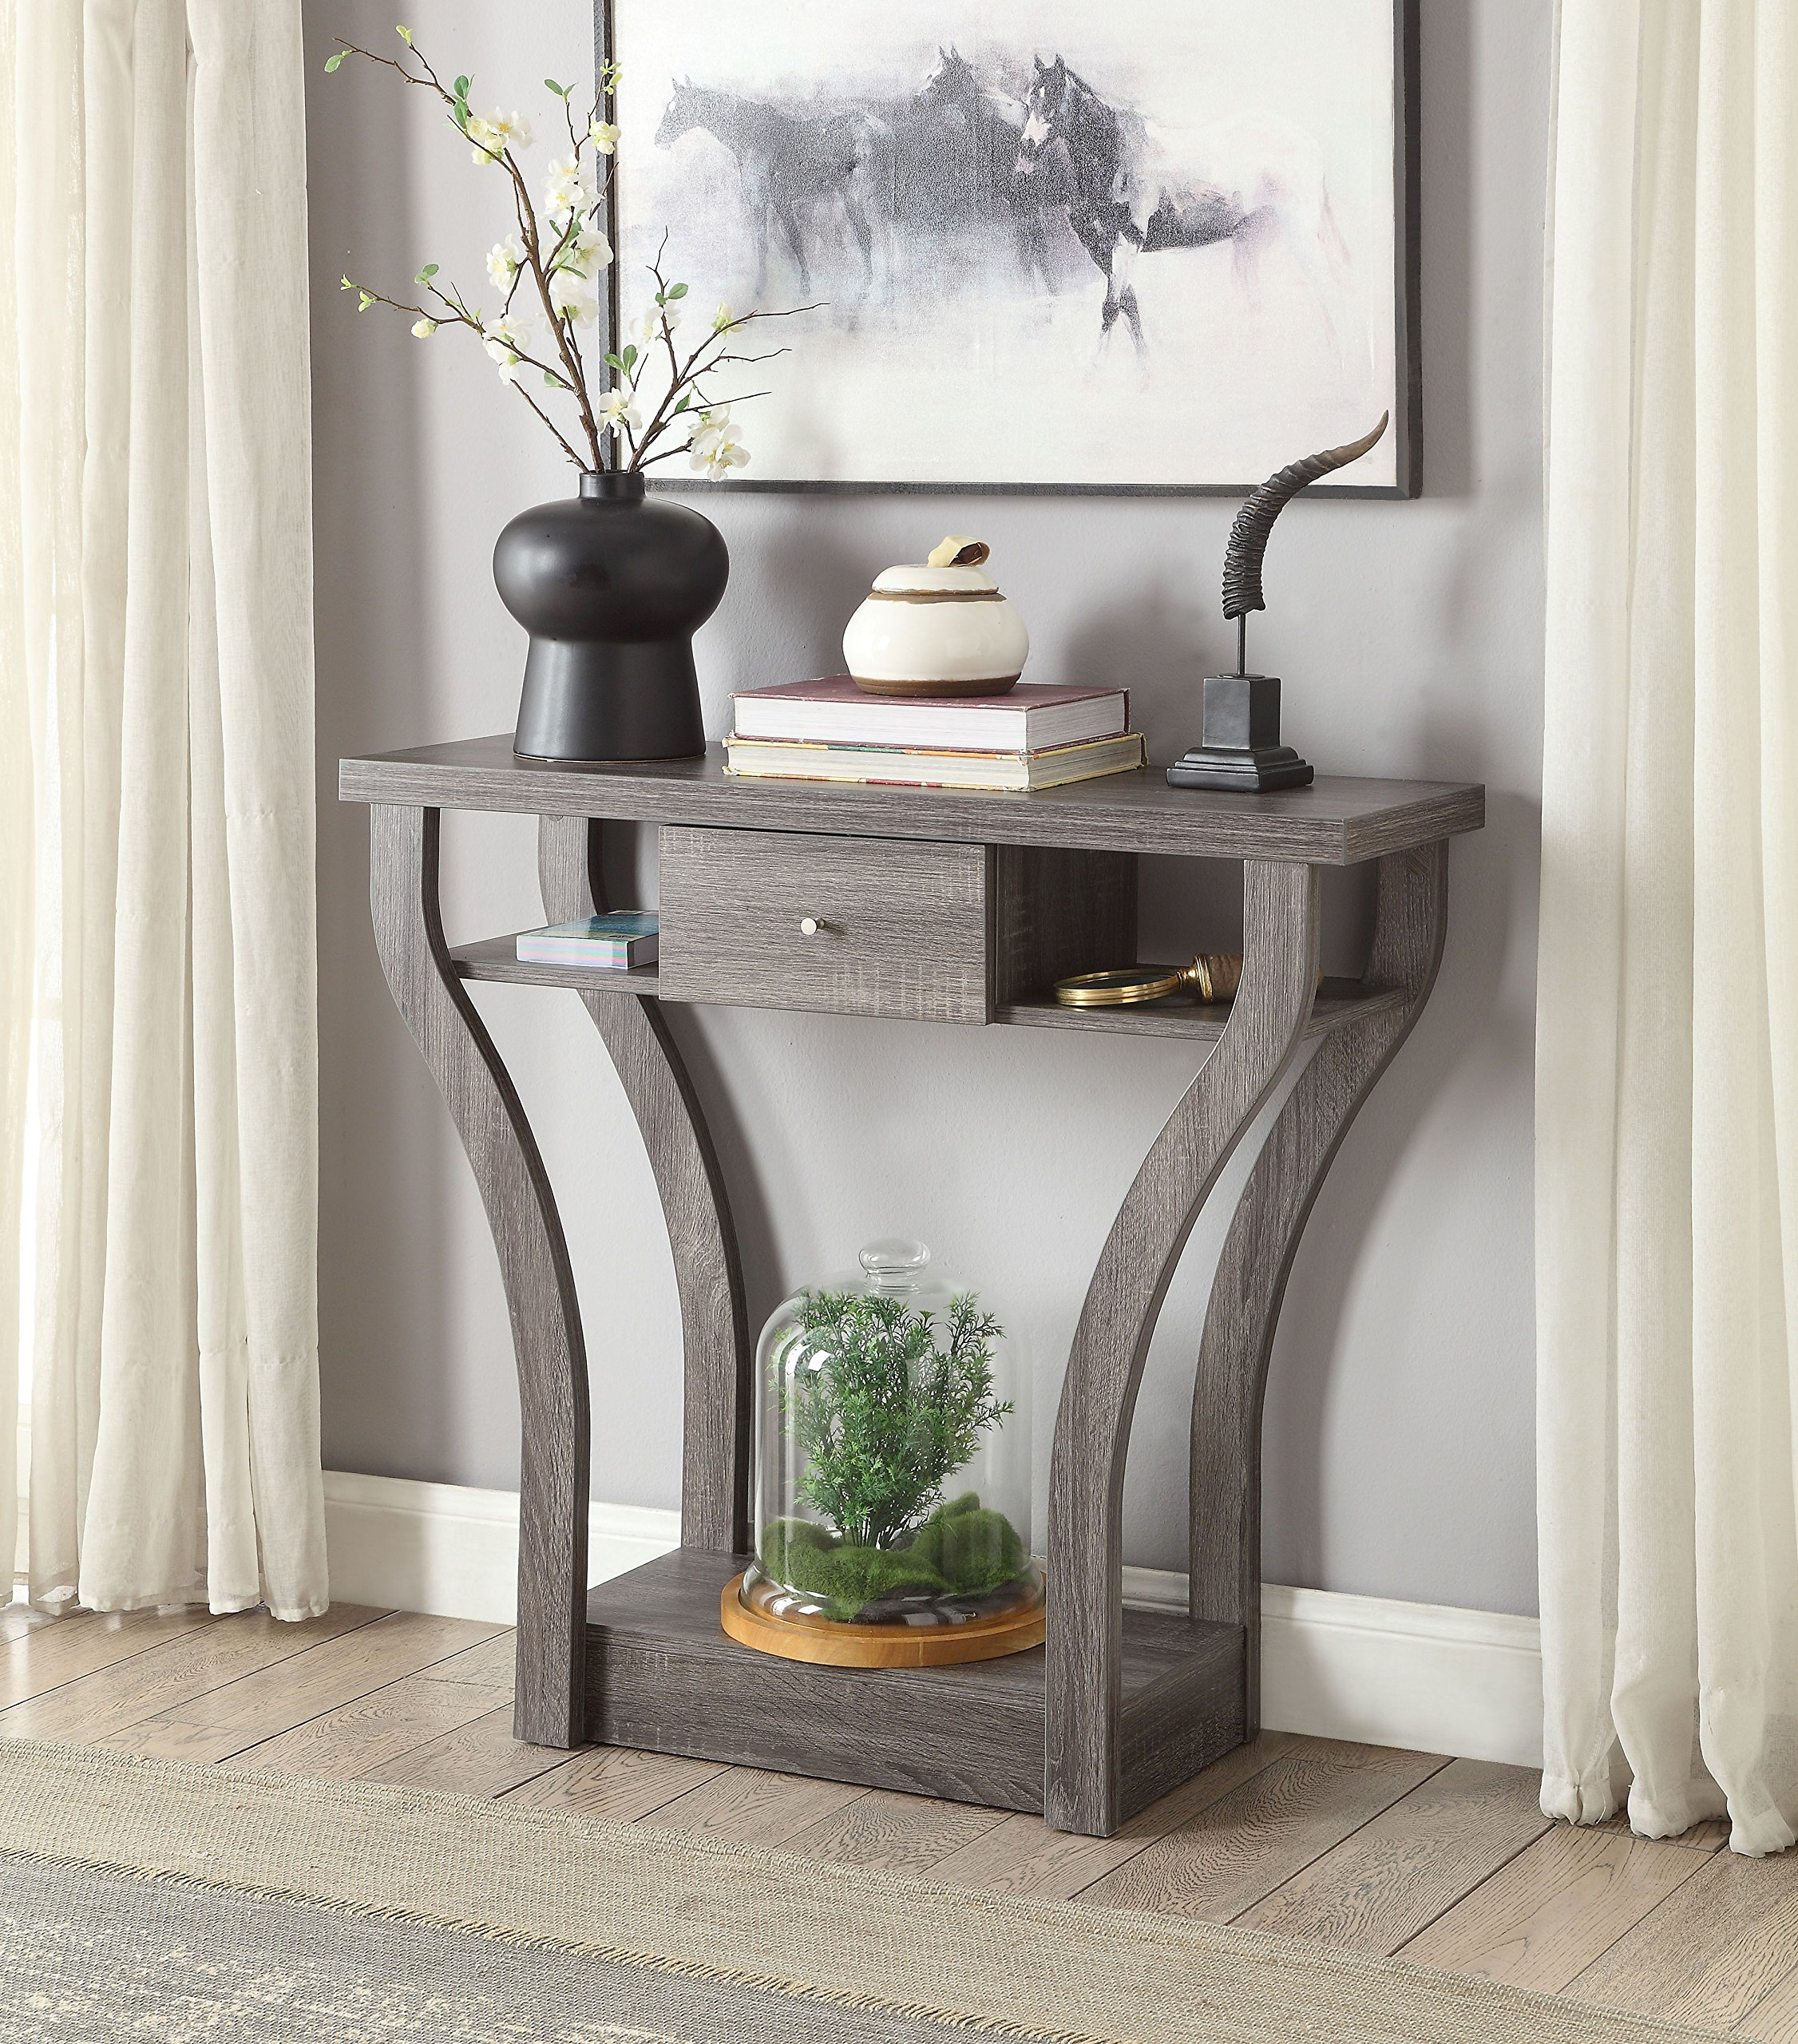 Weathered Grey Finish Curved Console Sofa Entry Hall Table with Shelf / Drawer